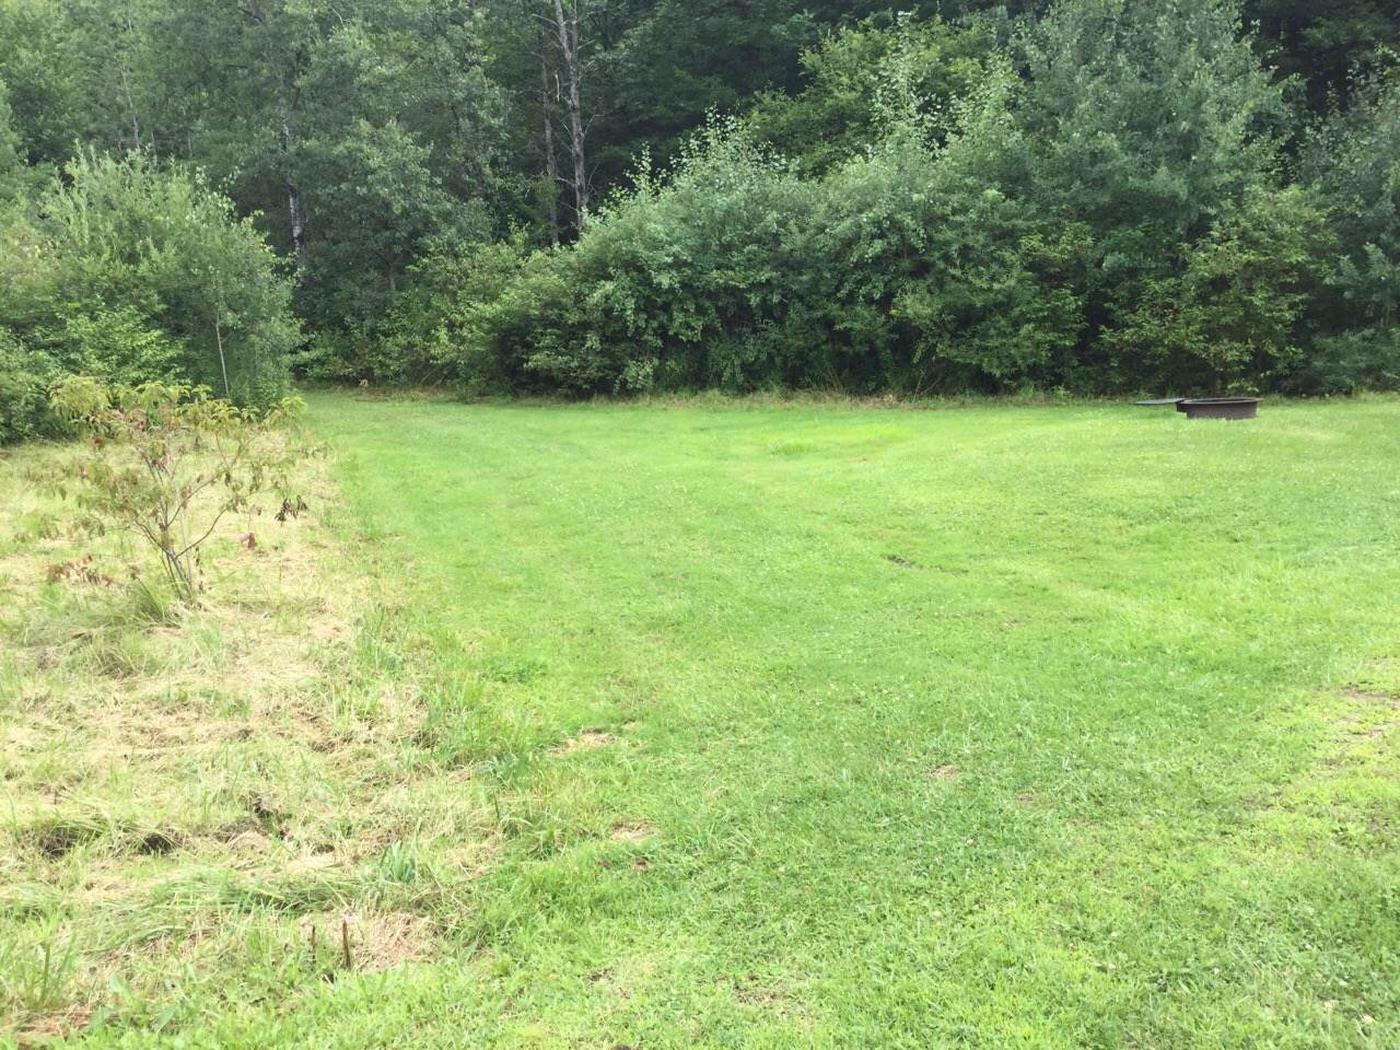 Willow Bay Recreation Area: Site 10